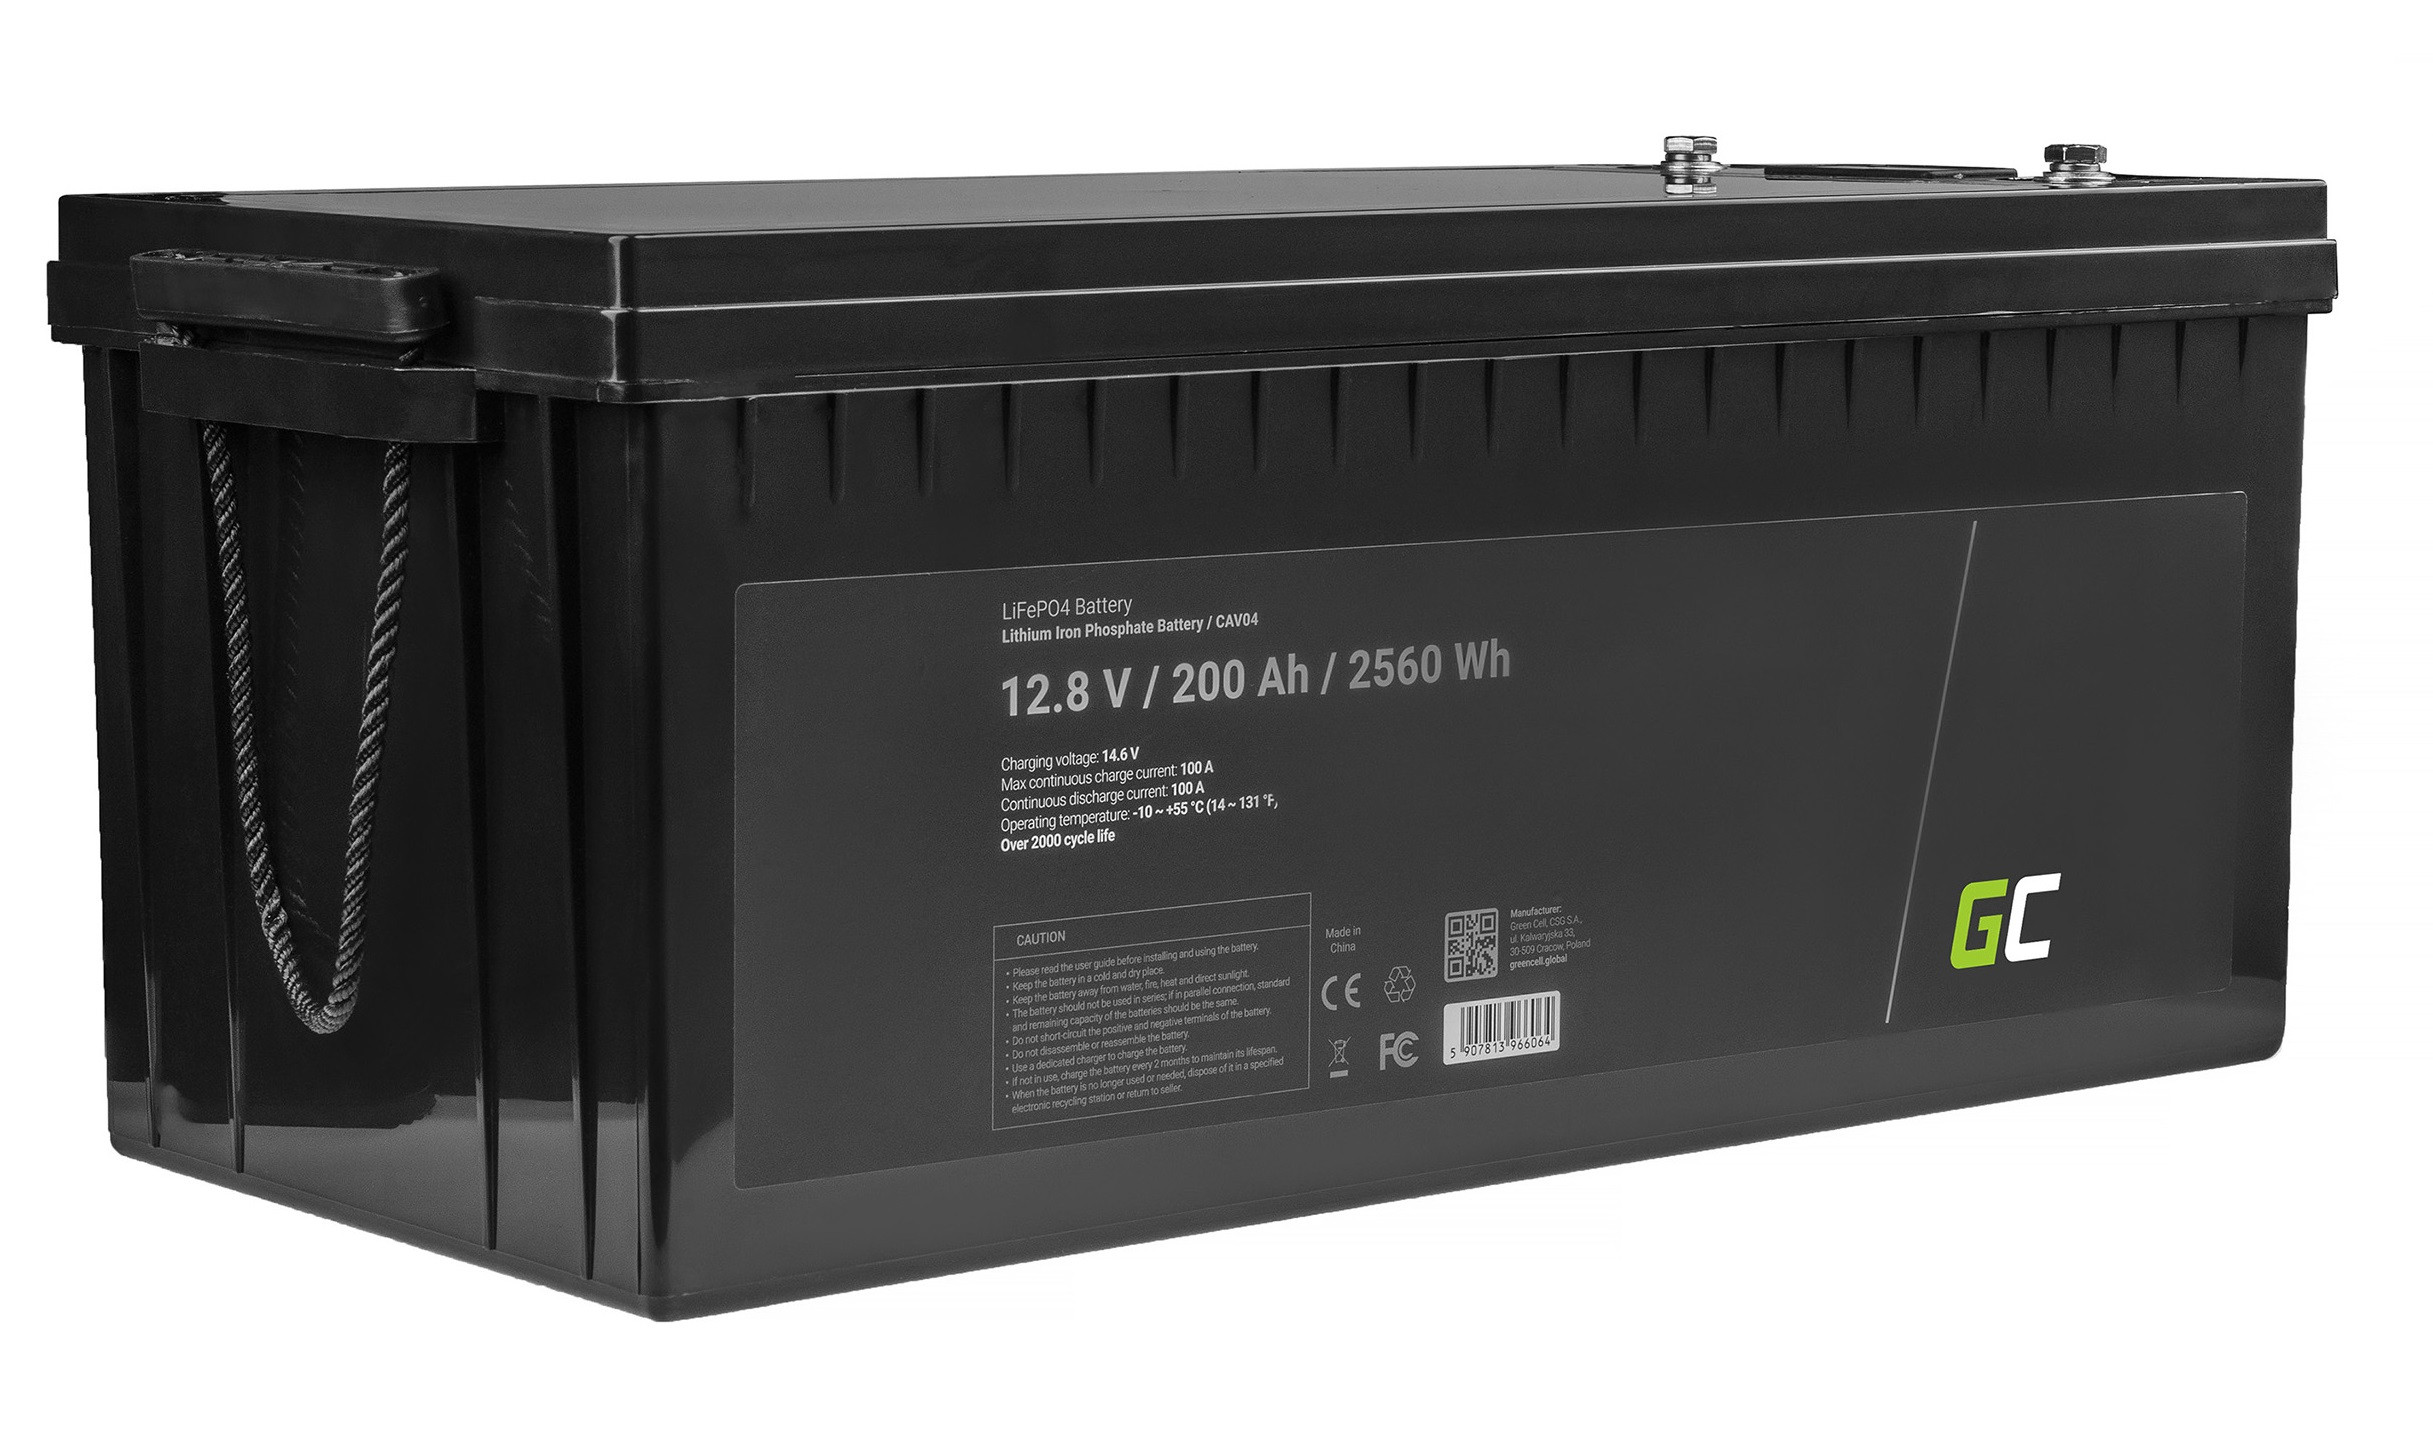 LiFePO4 battery 200Ah 12.8V 2560Wh lithium iron phosphate battery photovoltaic system camping truck